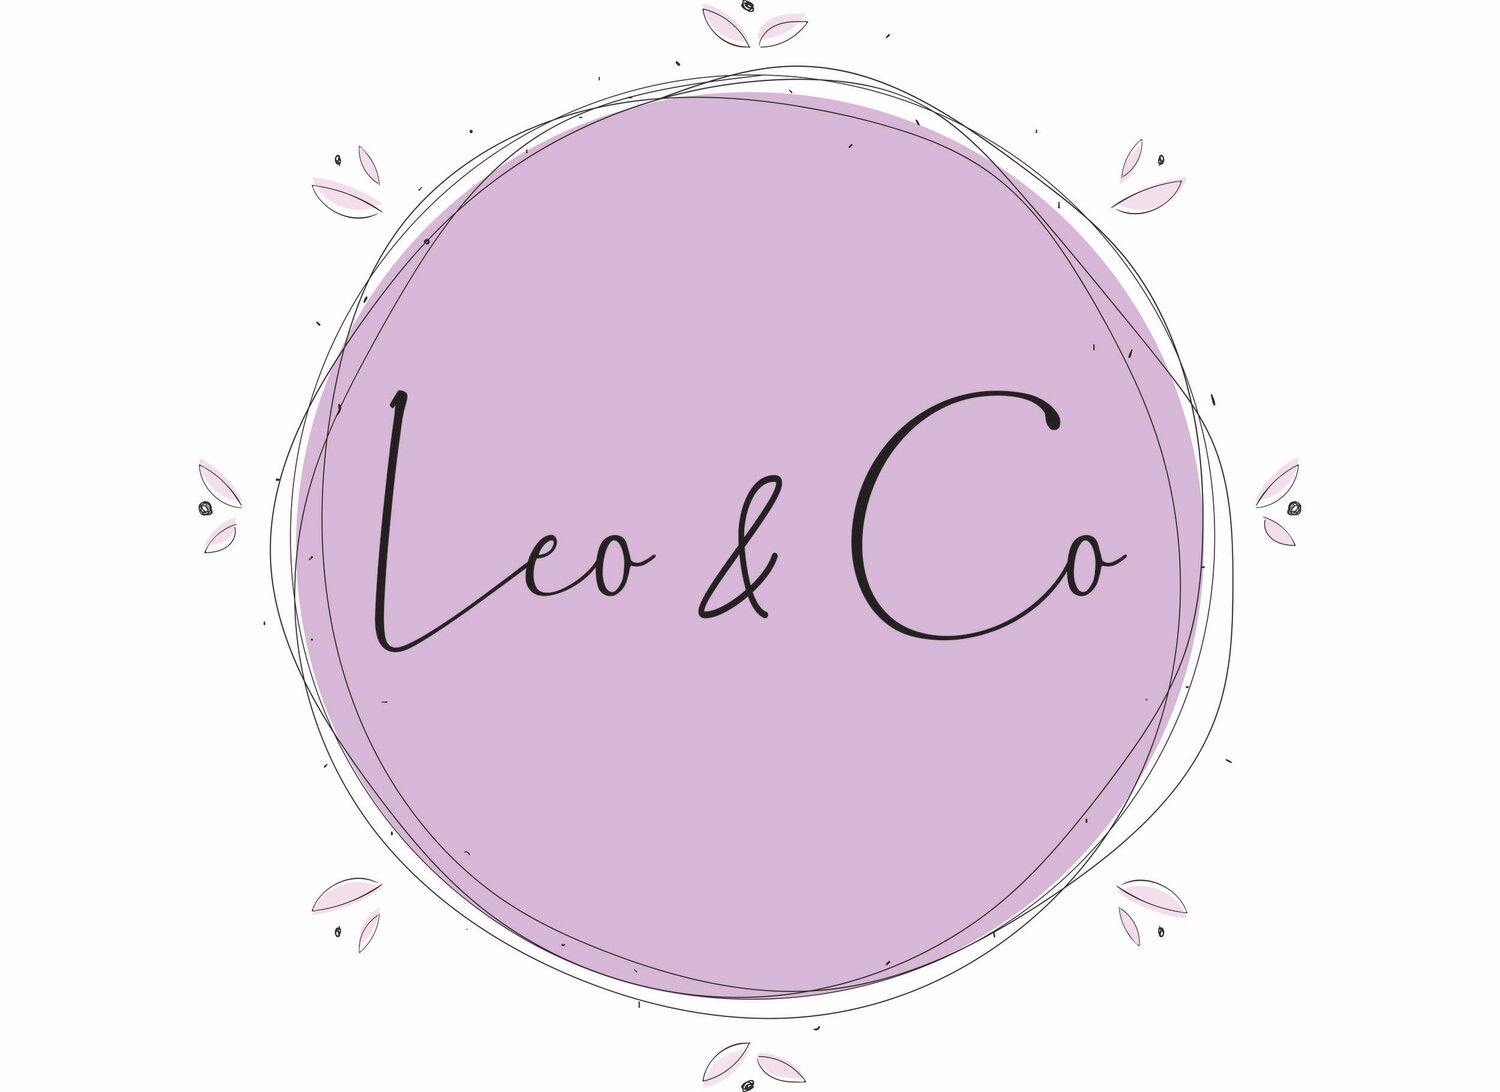 Leo & Co Bakery